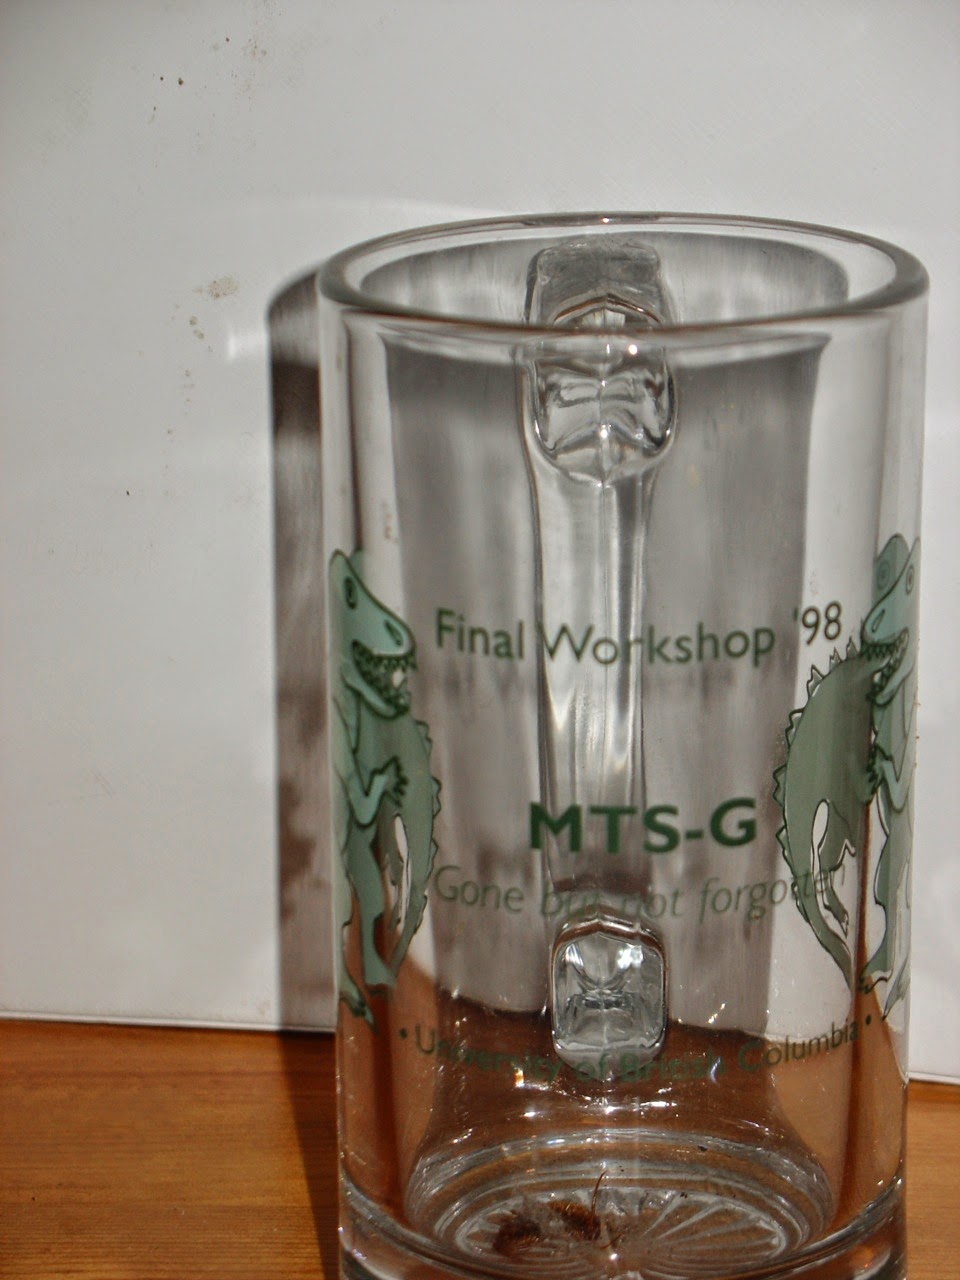 Photo: MTS-G Gone but not forgotten, Final Workshop 1998 at UBC